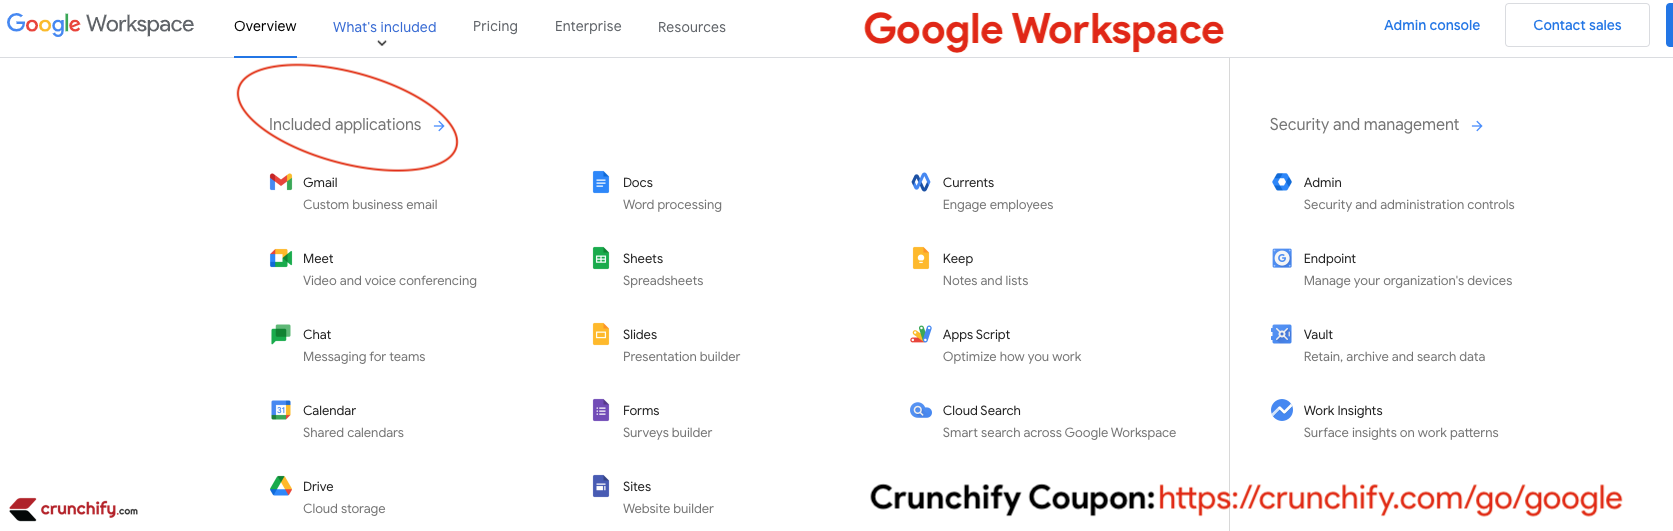 Google Workspace - What's Included